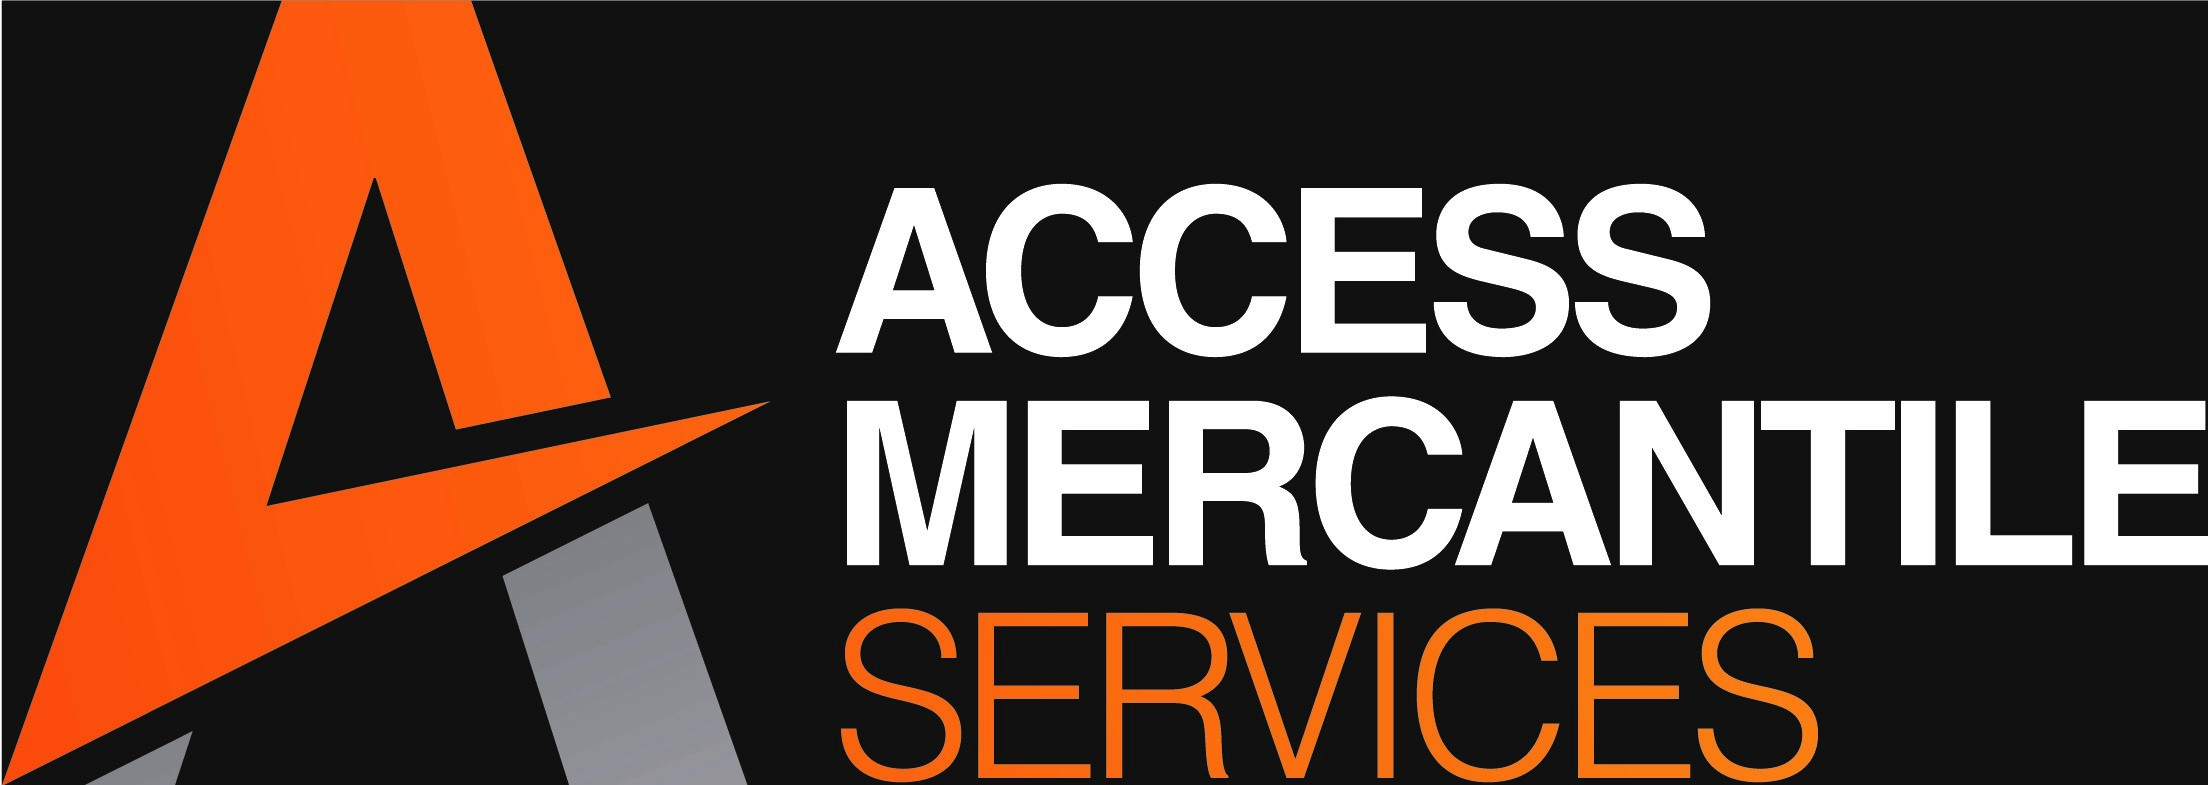 ACCESS MERCANTILE SERVICES